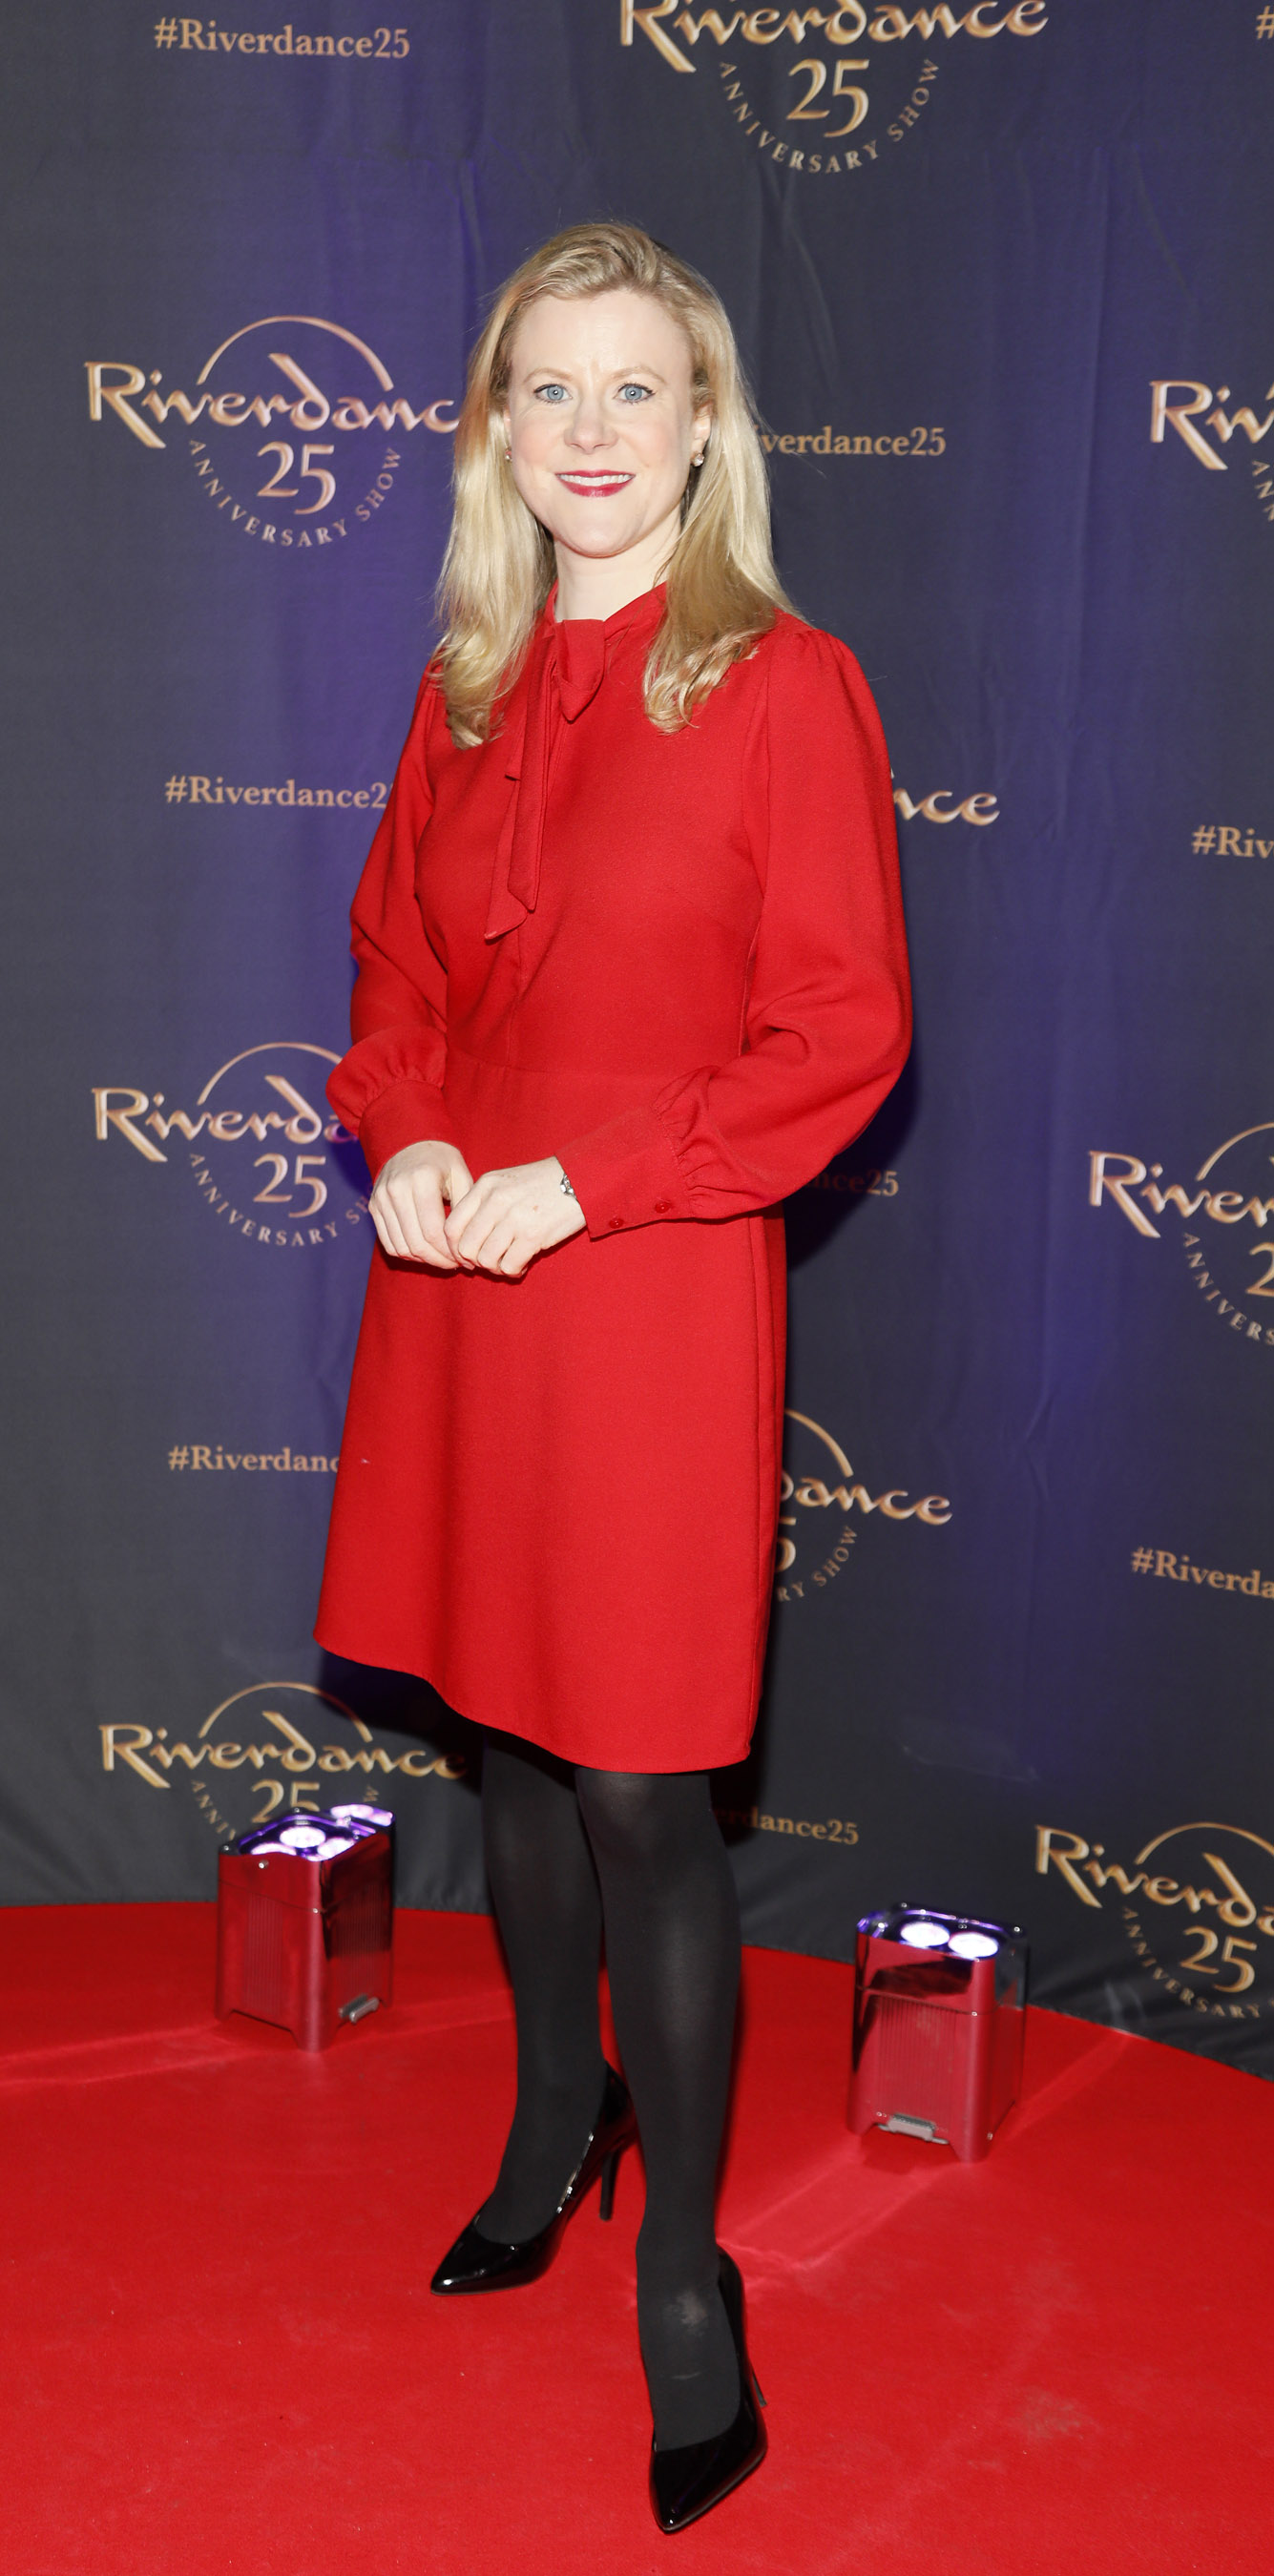 Nuala Carey at the historic gala performance of Riverdance 25th Anniversary show at 3Arena Dublin exactly 25 years to the day that Riverdance was first performed at the Point Depot.  Photo: Kieran Harnett